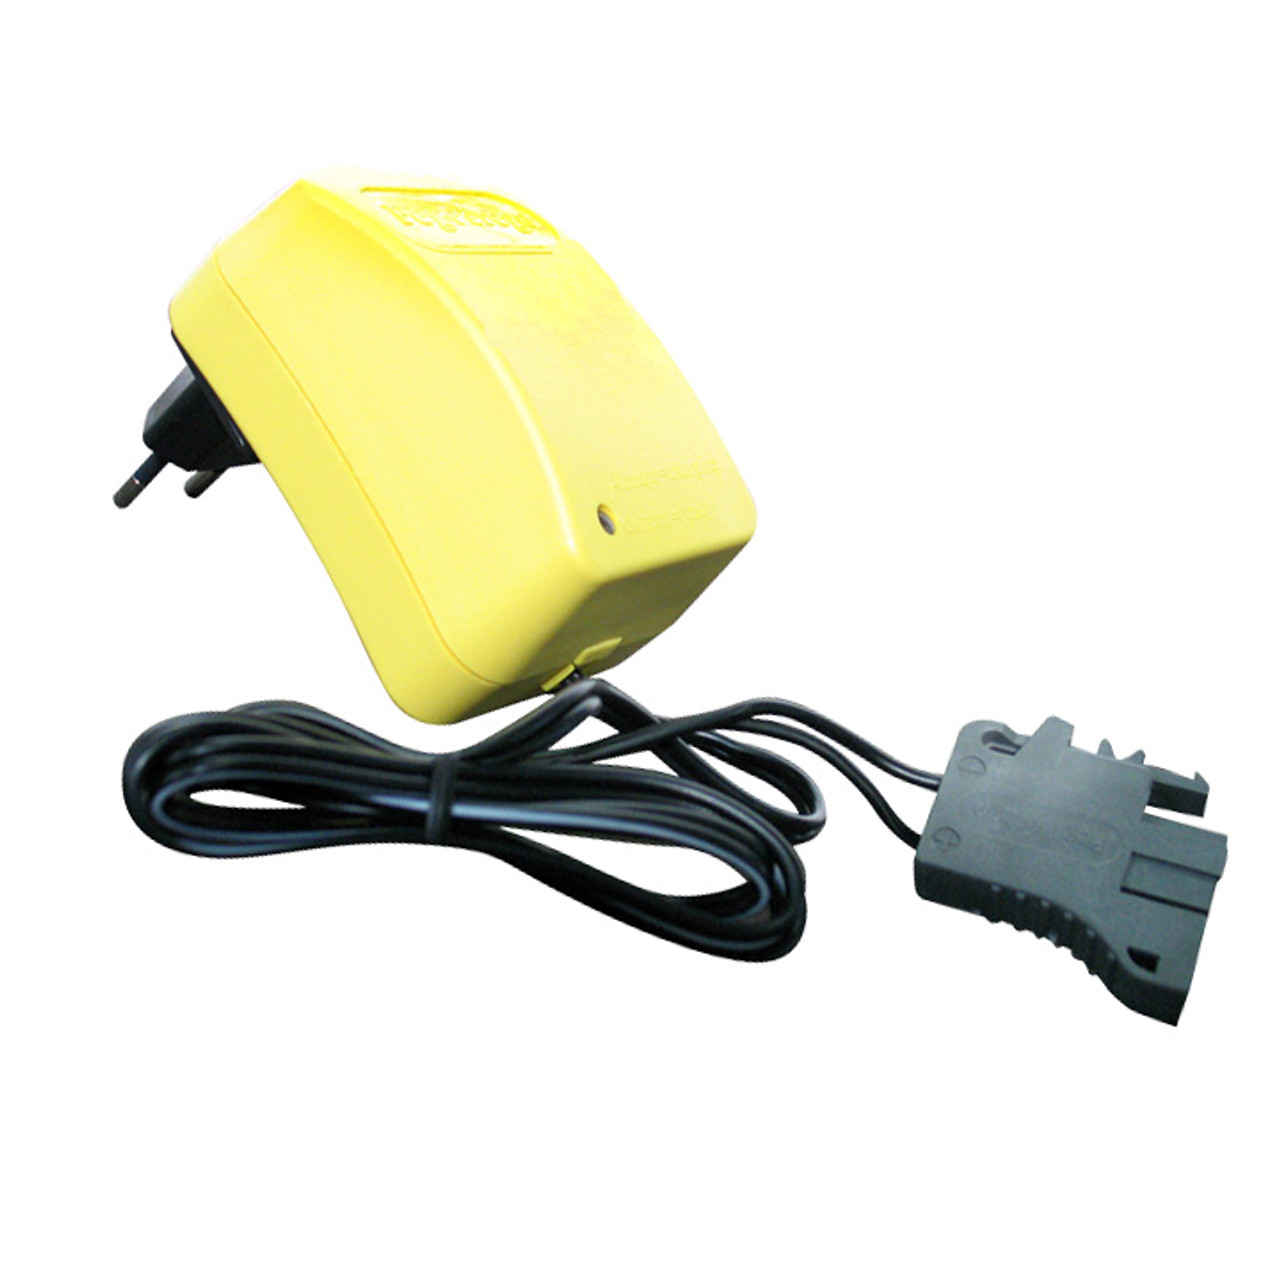 Official 24v Replacement Spare Battery Charger For Peg Perego Peg Perego Battery Toys